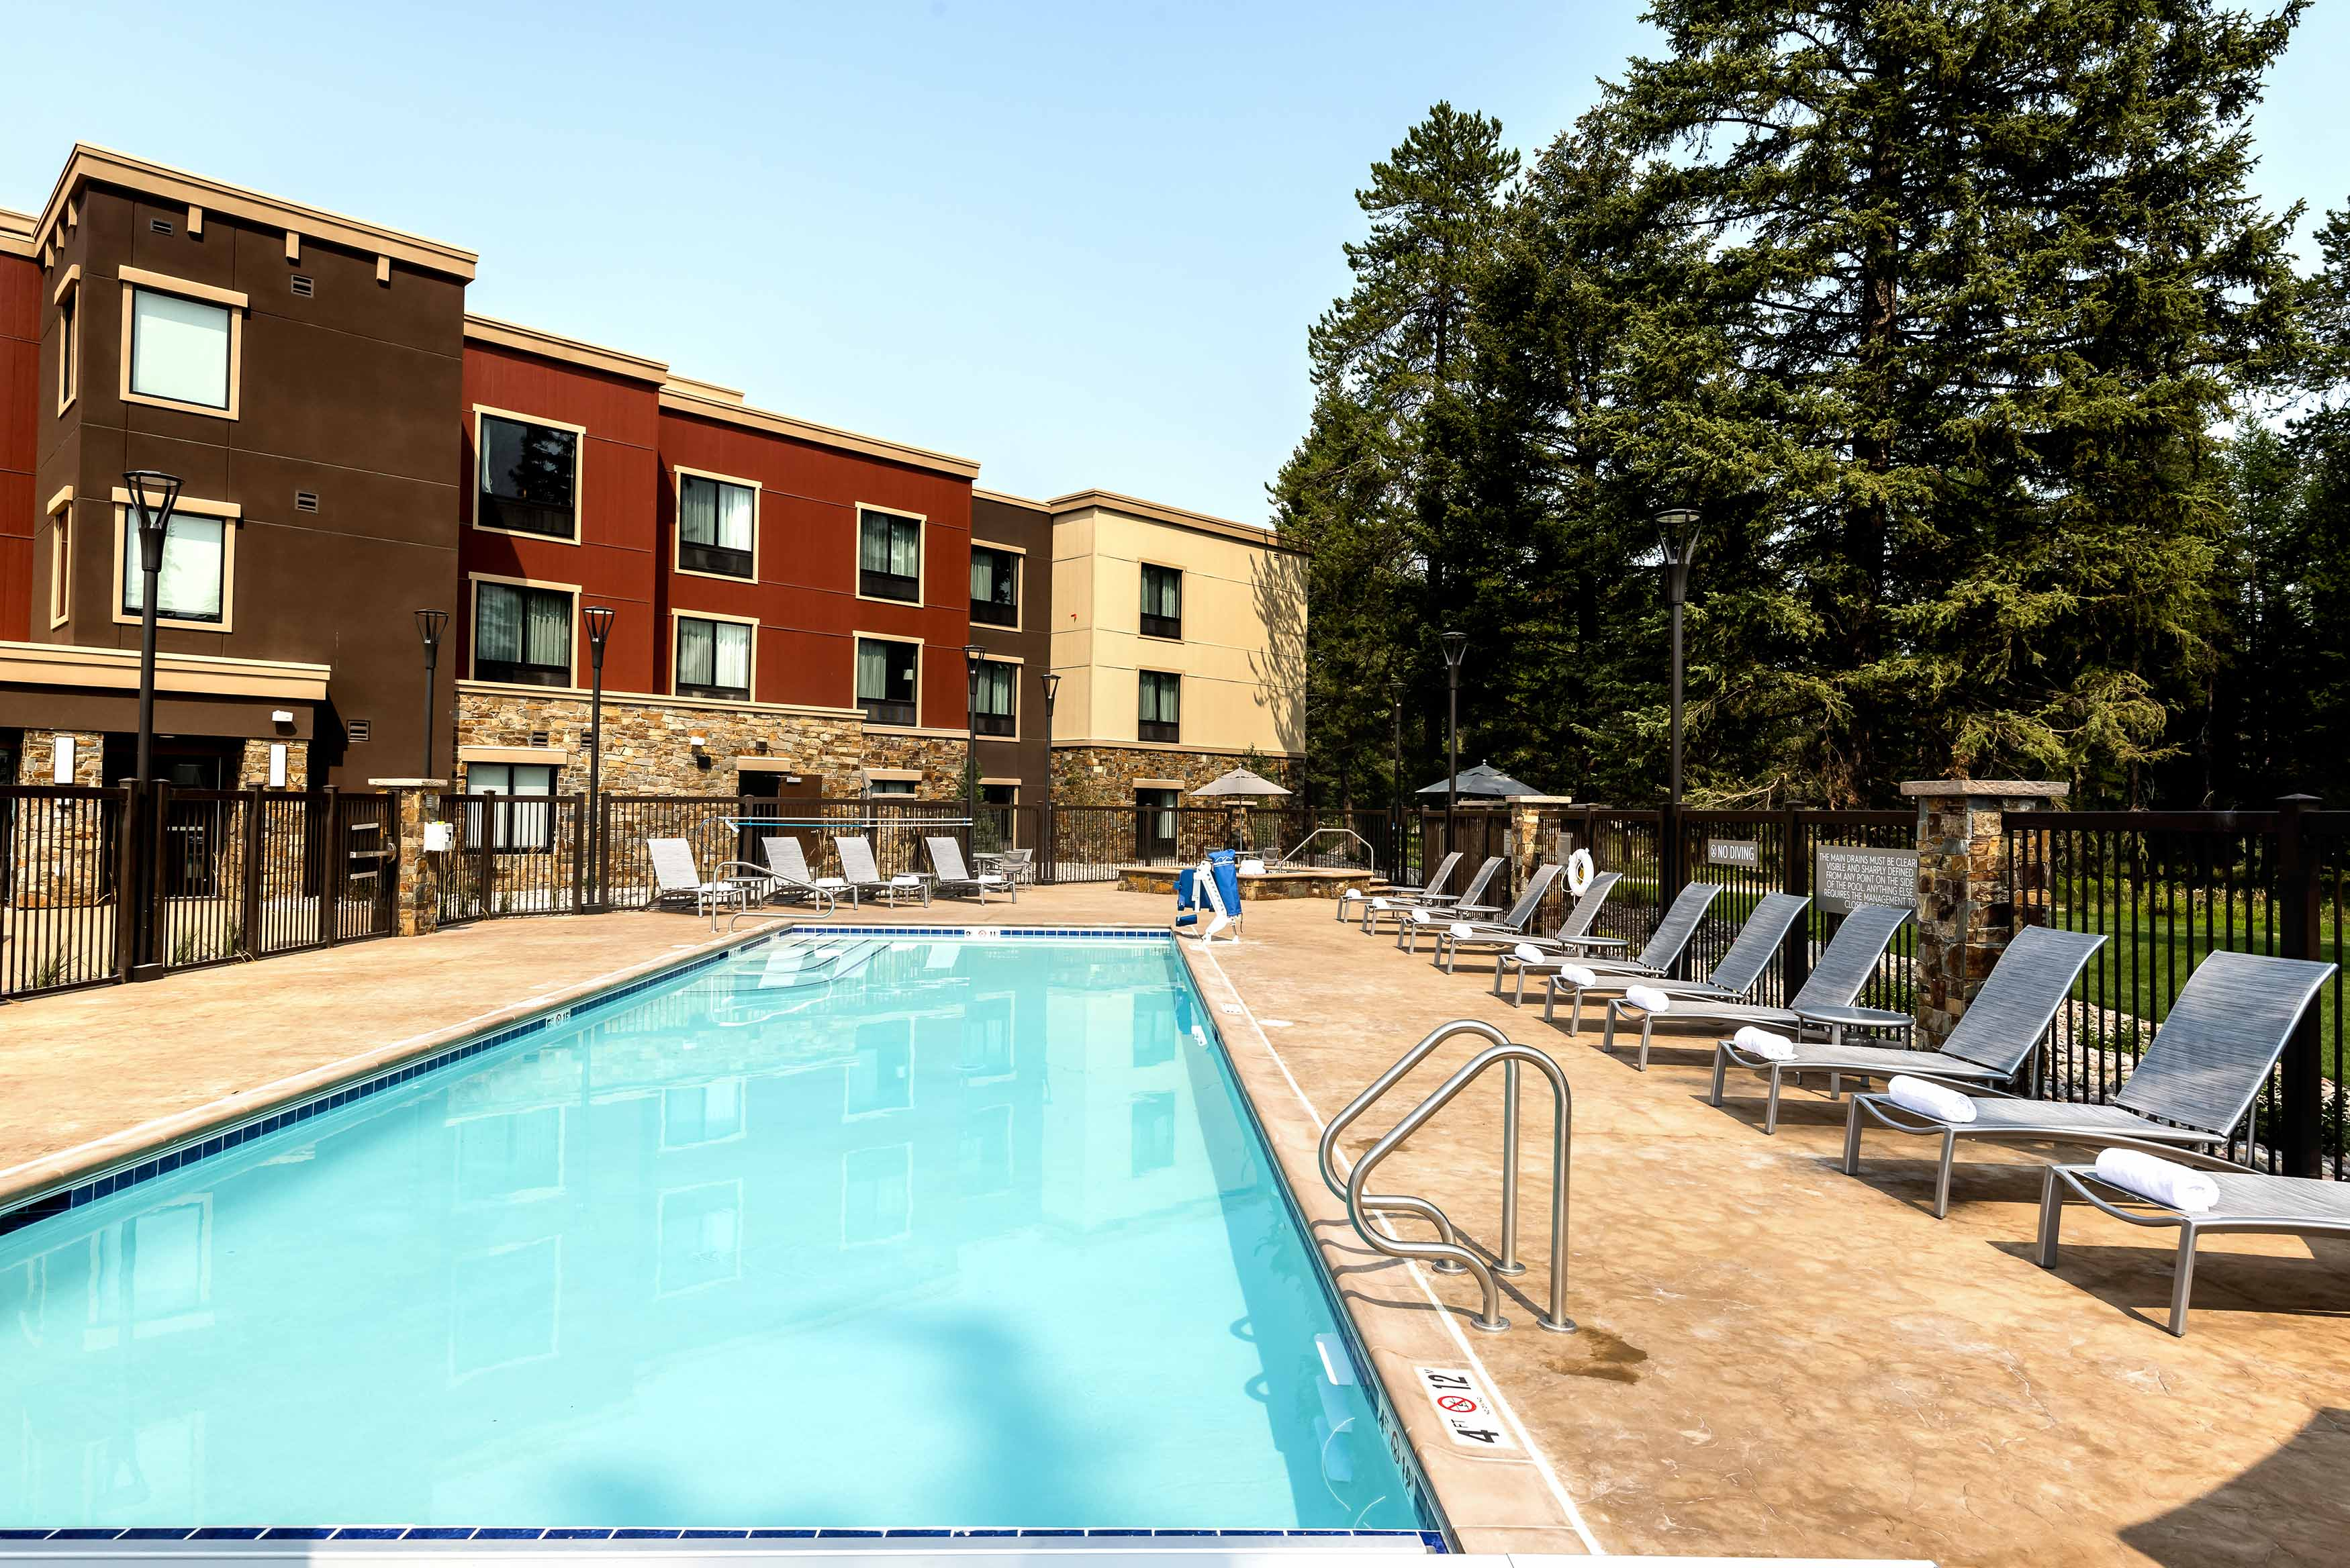 Towne-place-suite-marriott-hotels-towneplace-hotel-whitefish-montana-pool